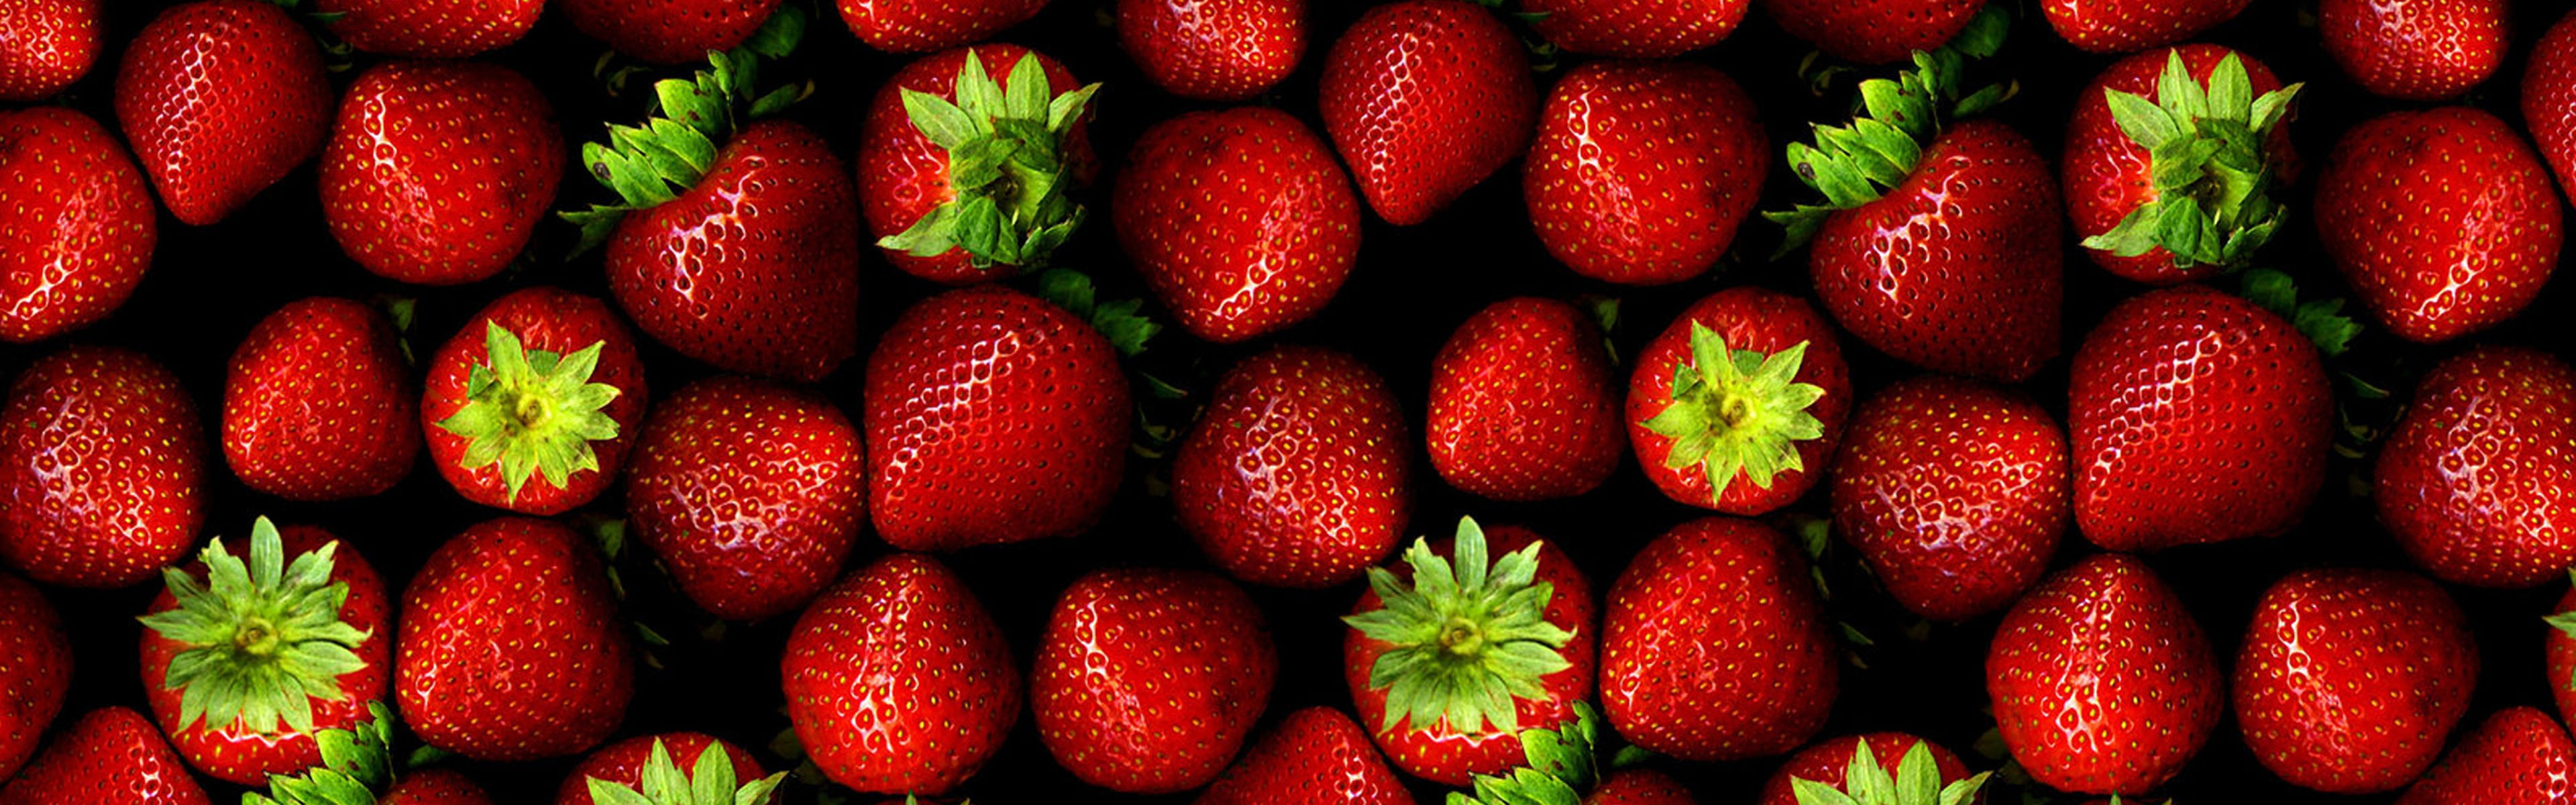 Wallpaper Strawberry Cute Strawberry Wallpapers High Quality Download Free